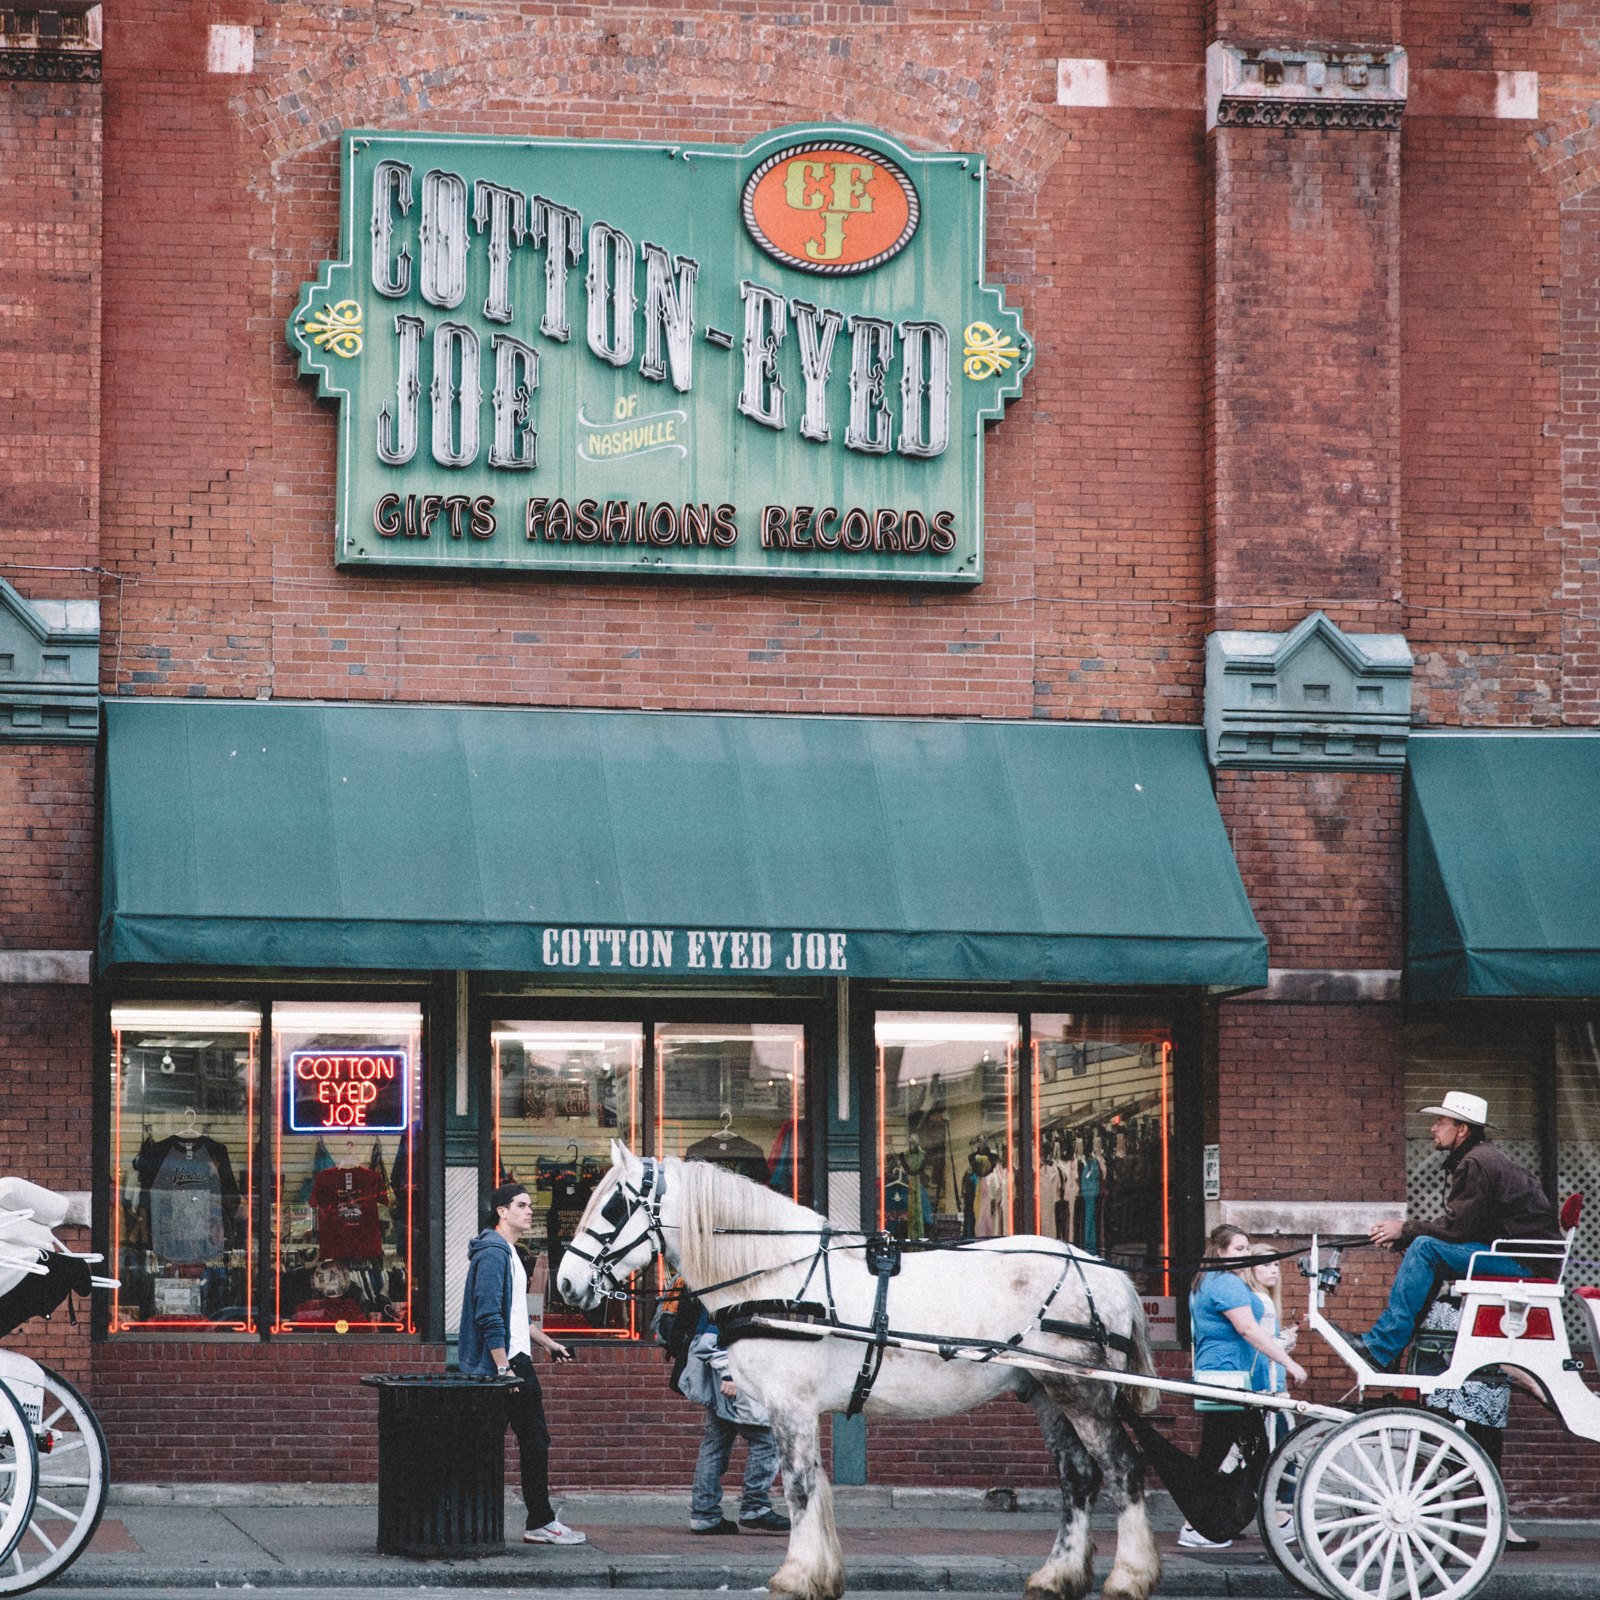 Horse-drawn carriages wait for customers.